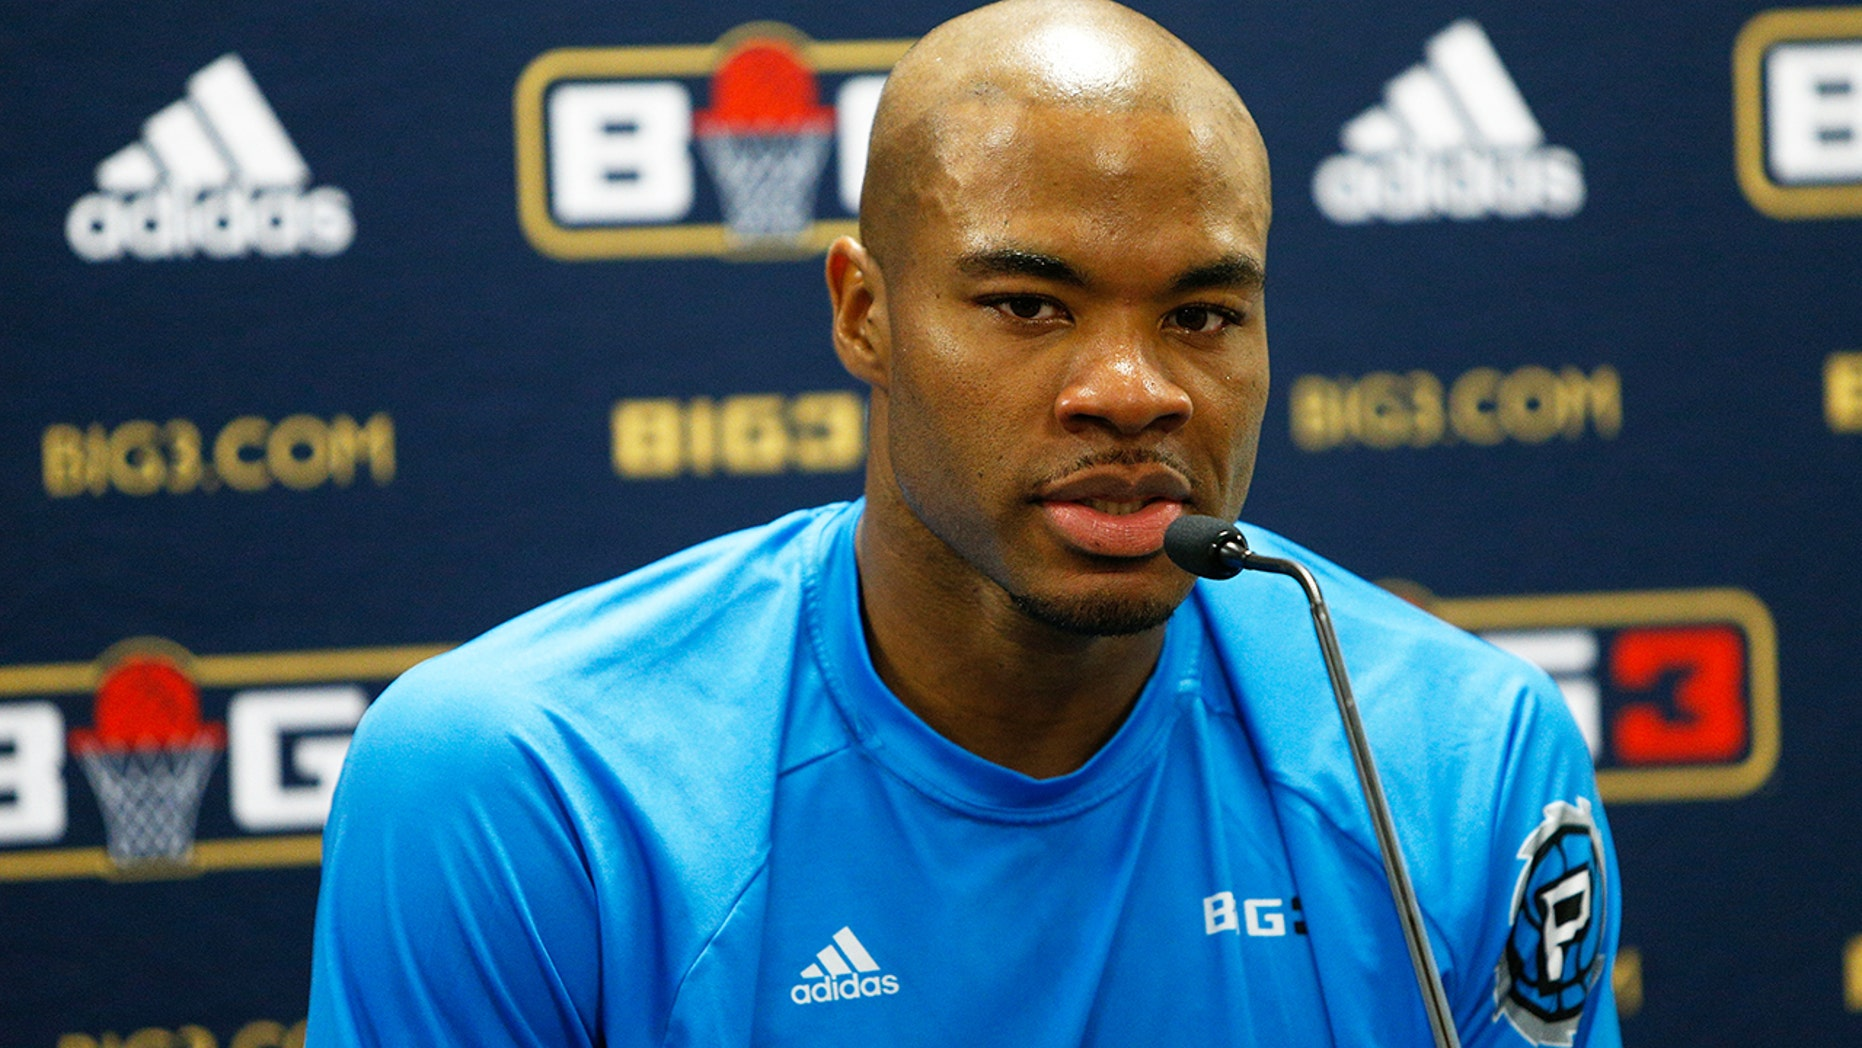 AUGUST 10: Corey Maggette answers questions from the media during week eight of the BIG3 three on three basketball league at Infinite Energy Arena in Duluth, Georgia. (Getty Images)